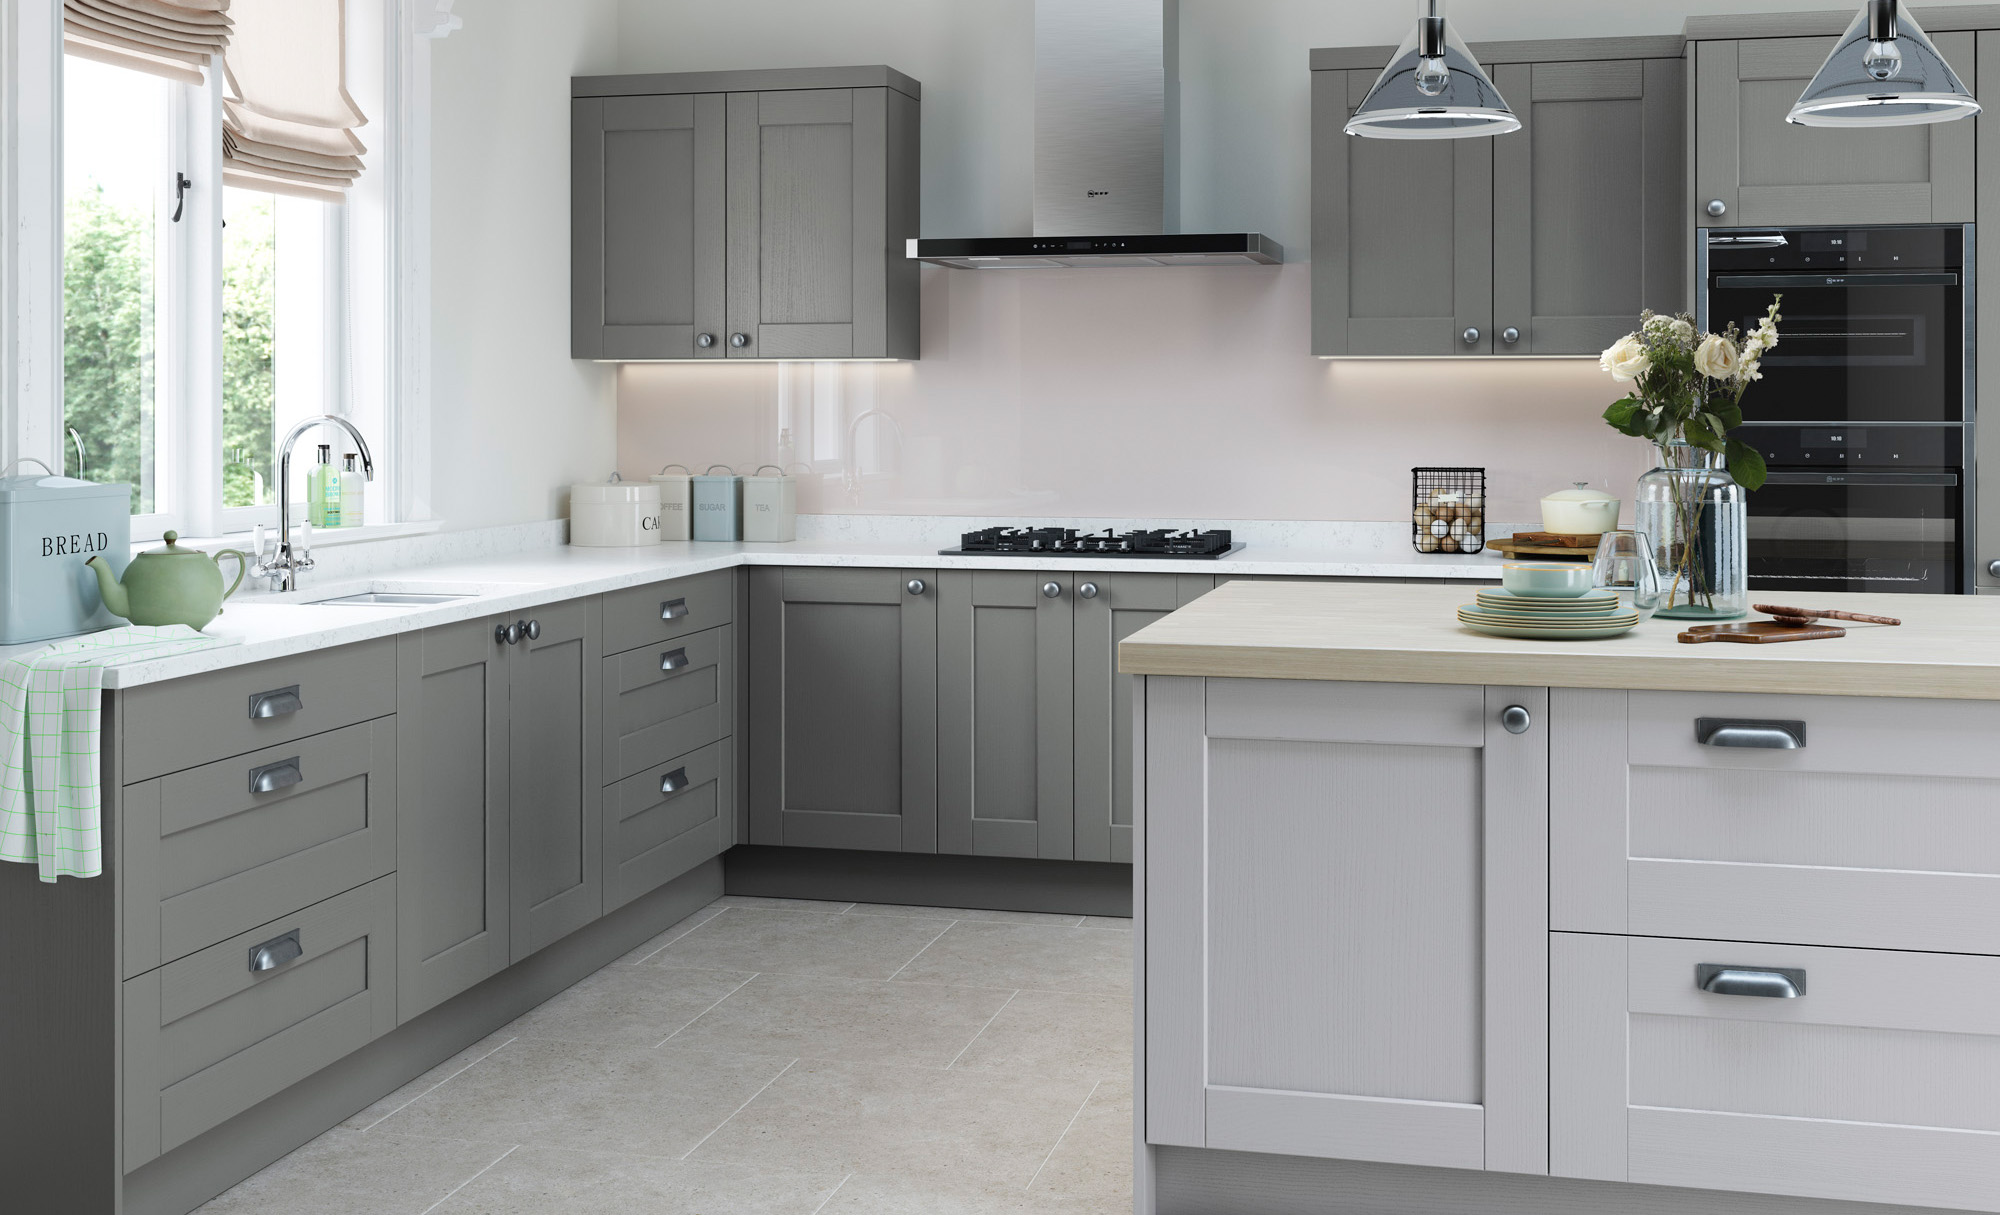 Shaker kitchen doors kensington classic uform Kitchen design light grey